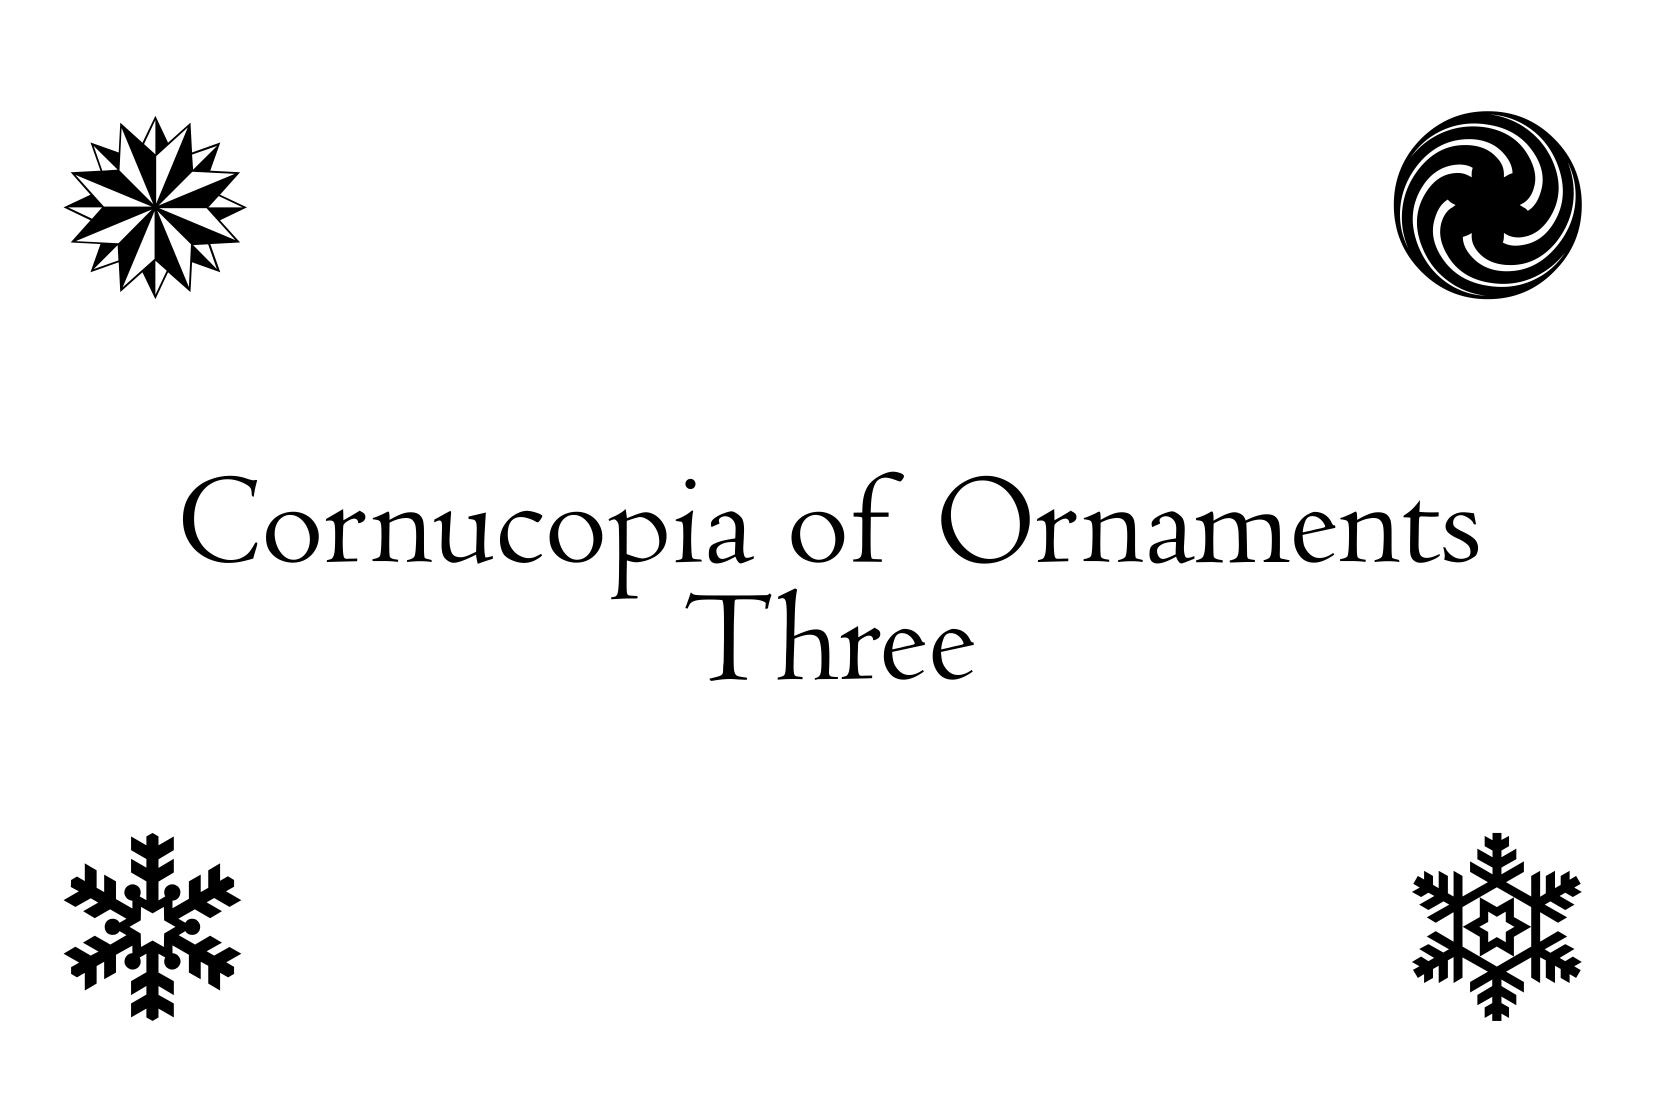 Cornucopia of Ornaments Three example image 2